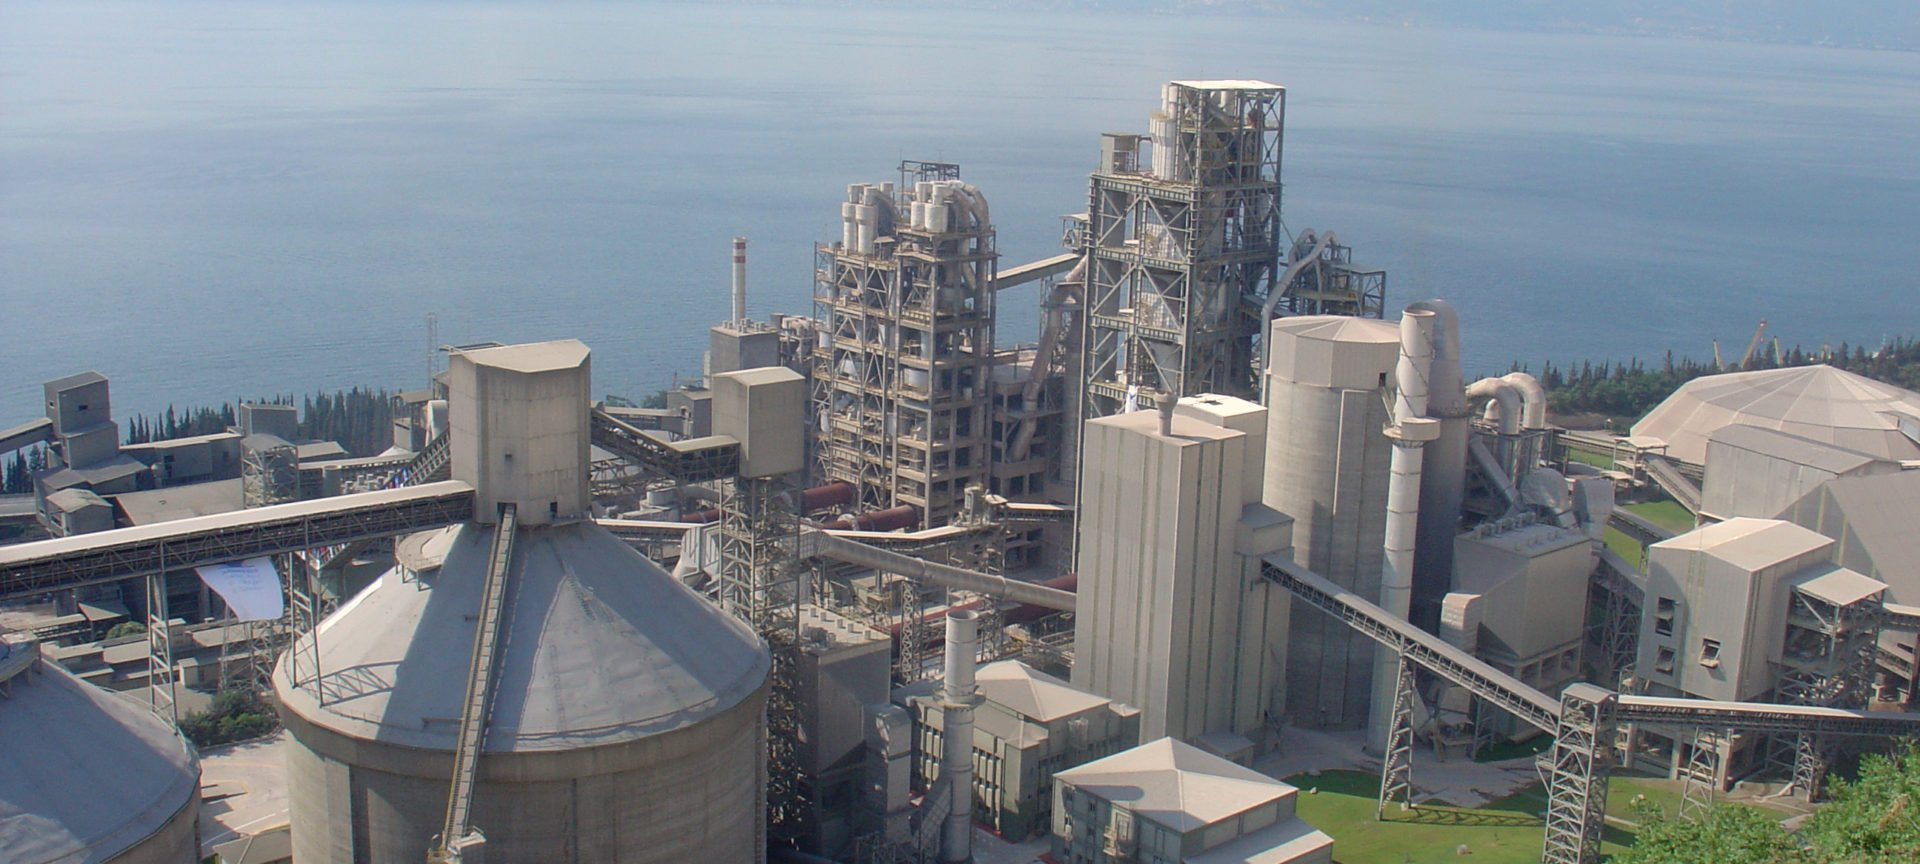 AUMUND Group Industrie Zement - Industry Cement, Nuh Çimento, Türkei